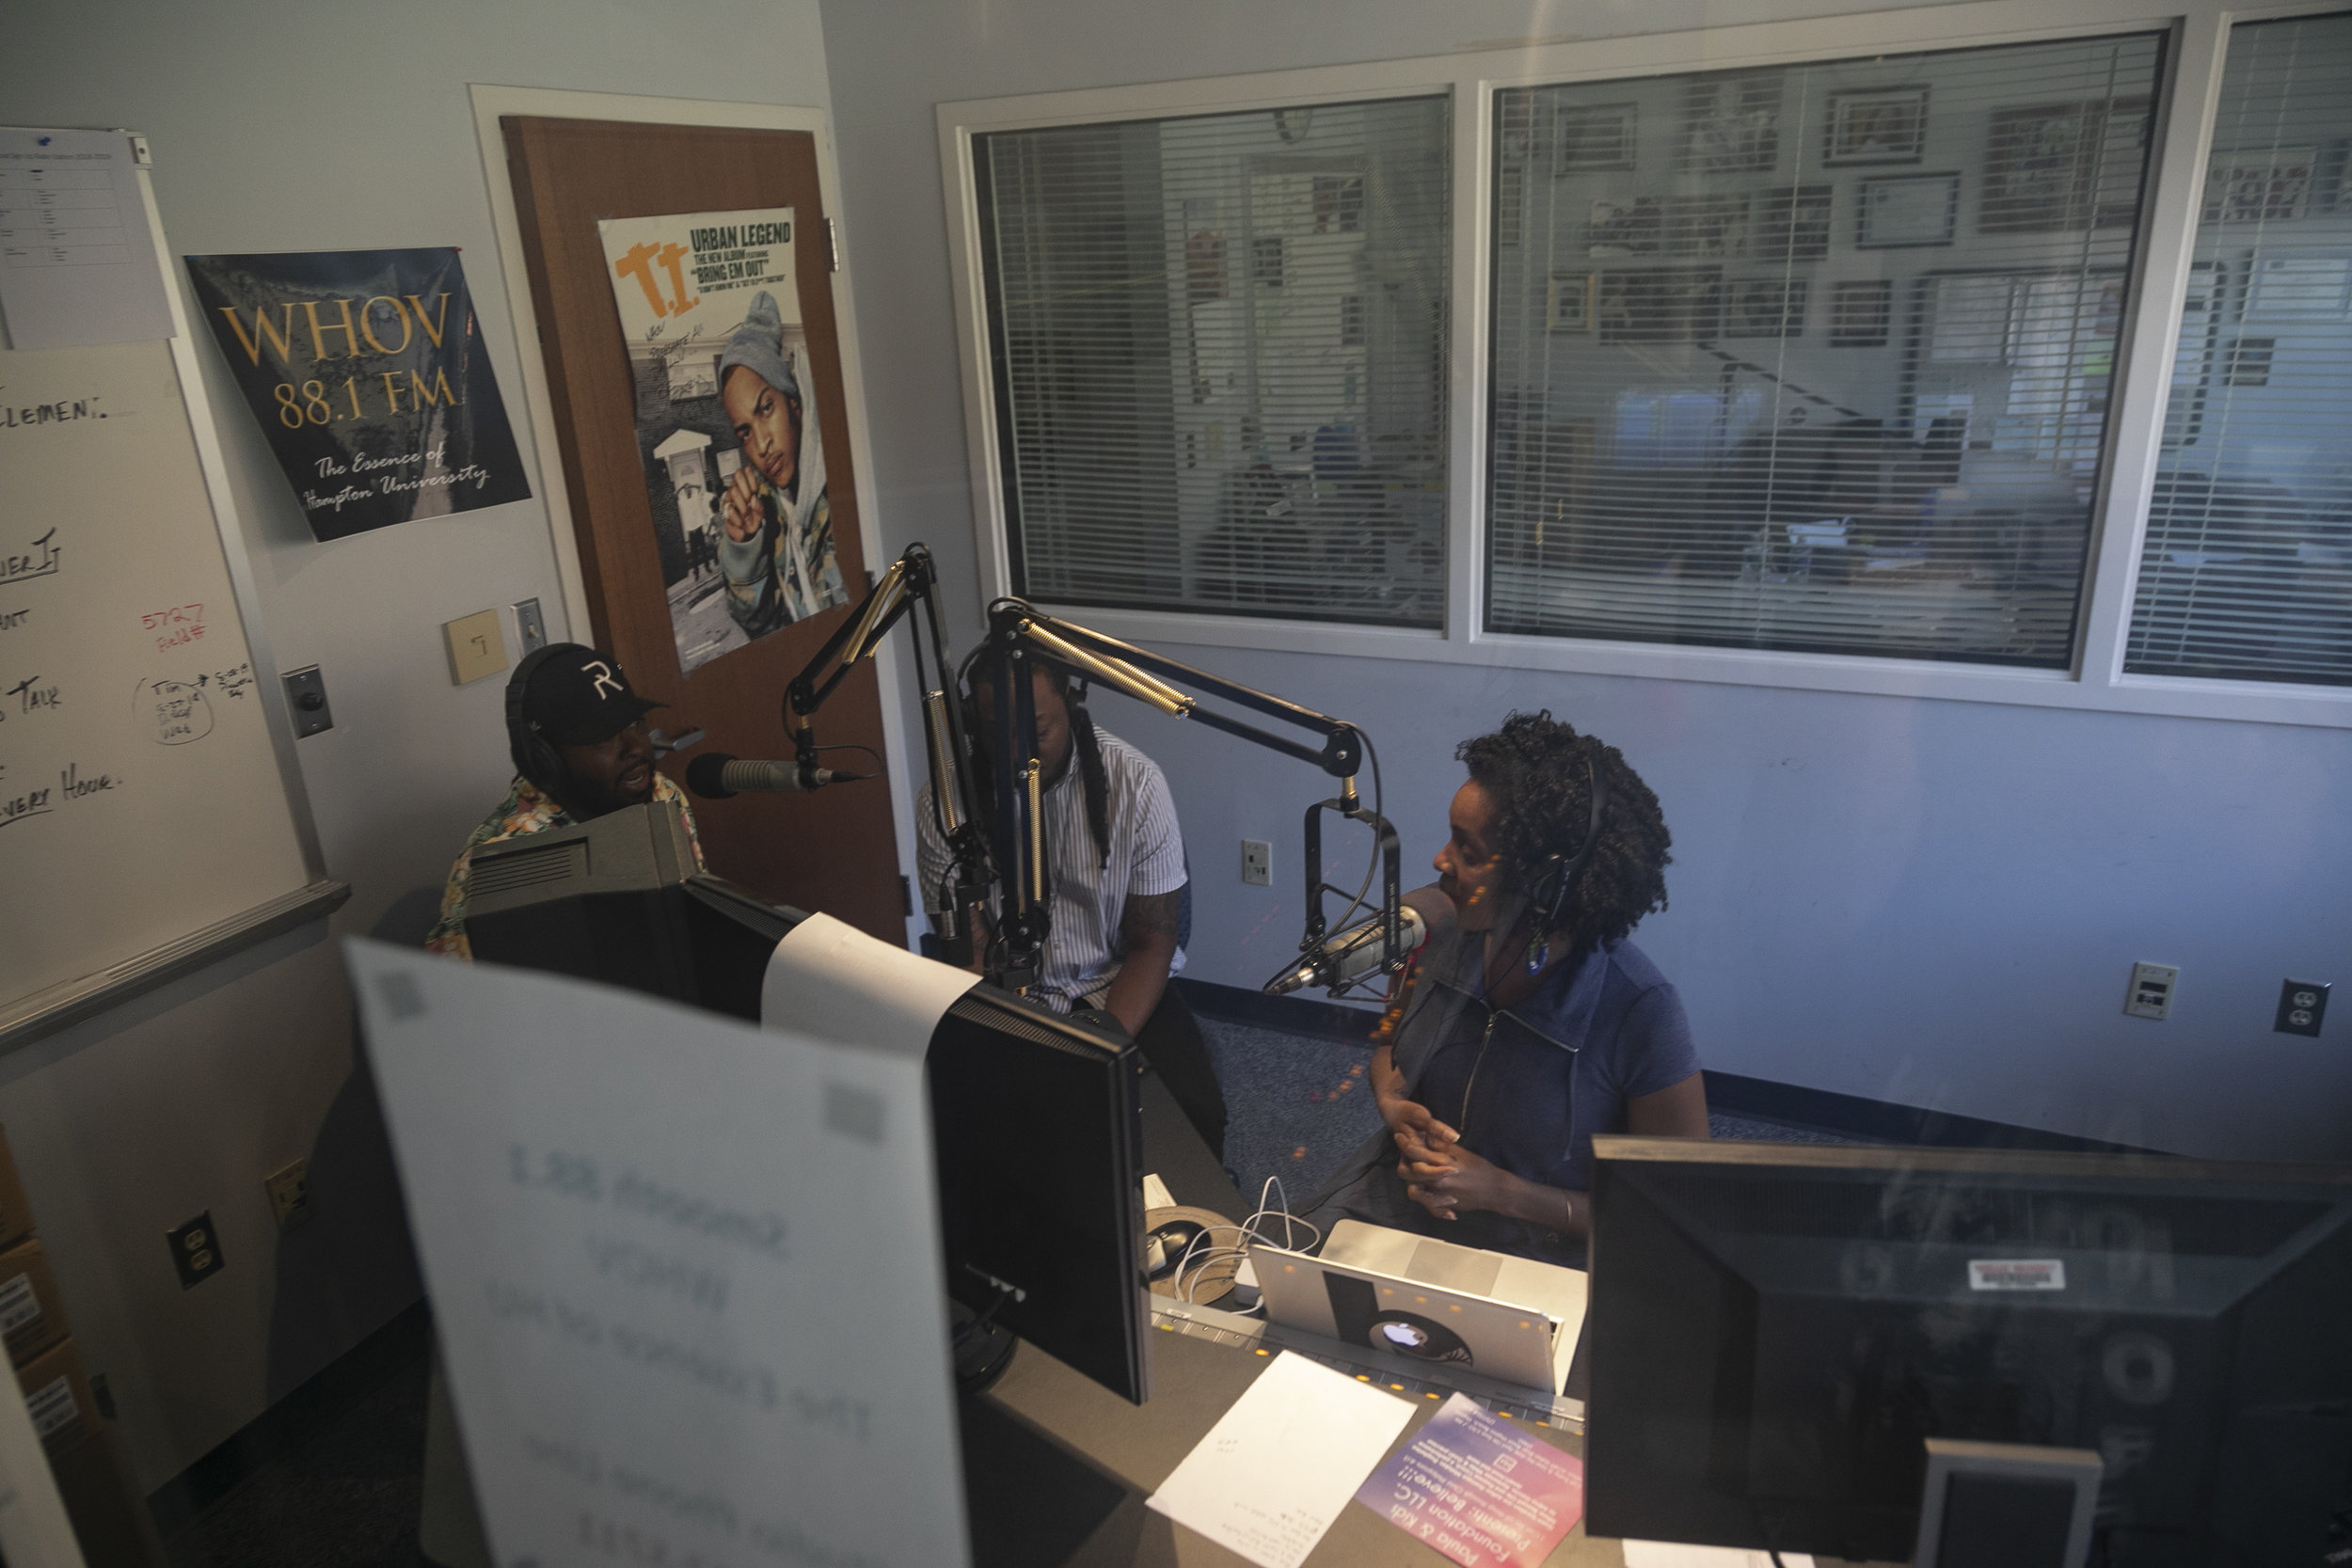 Mike and his brother Brandon Bass (Namebrand) on a radio show on April 17, 2019 in Hampton, Virginia. Mike and Brandon were talking about black owned businesses and the music industry.